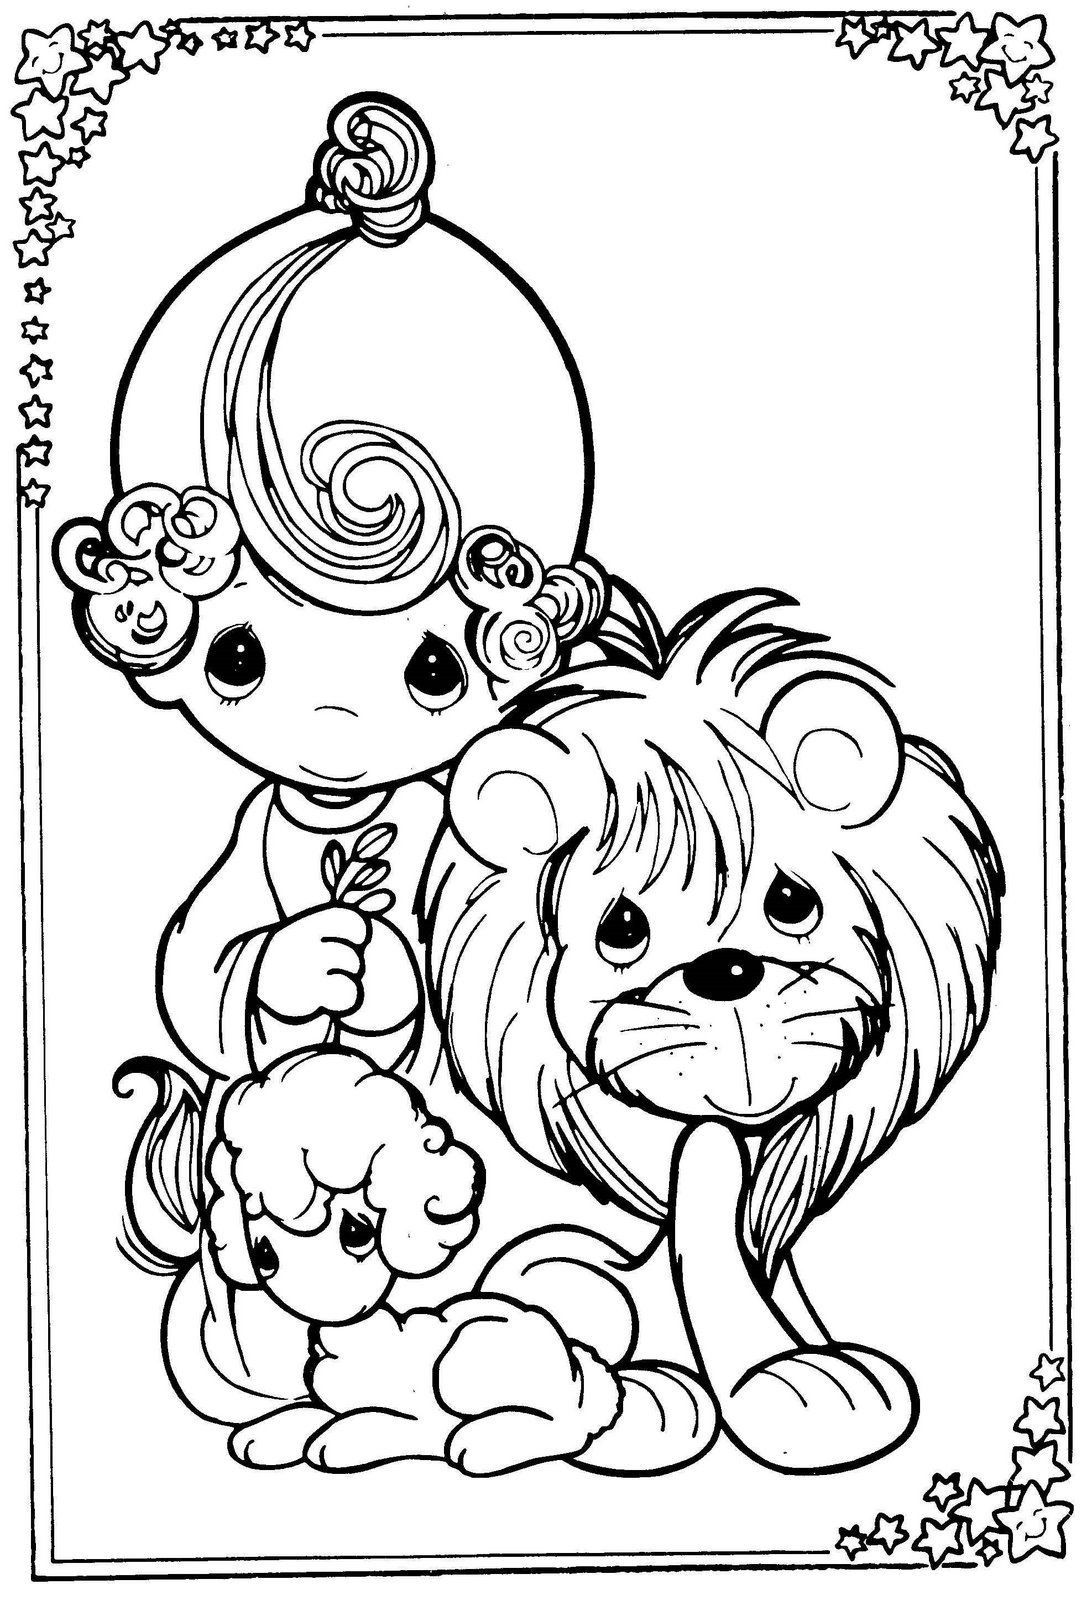 lion and lamb coloring page lion and lamb clipart clipart suggest and lamb coloring page lion